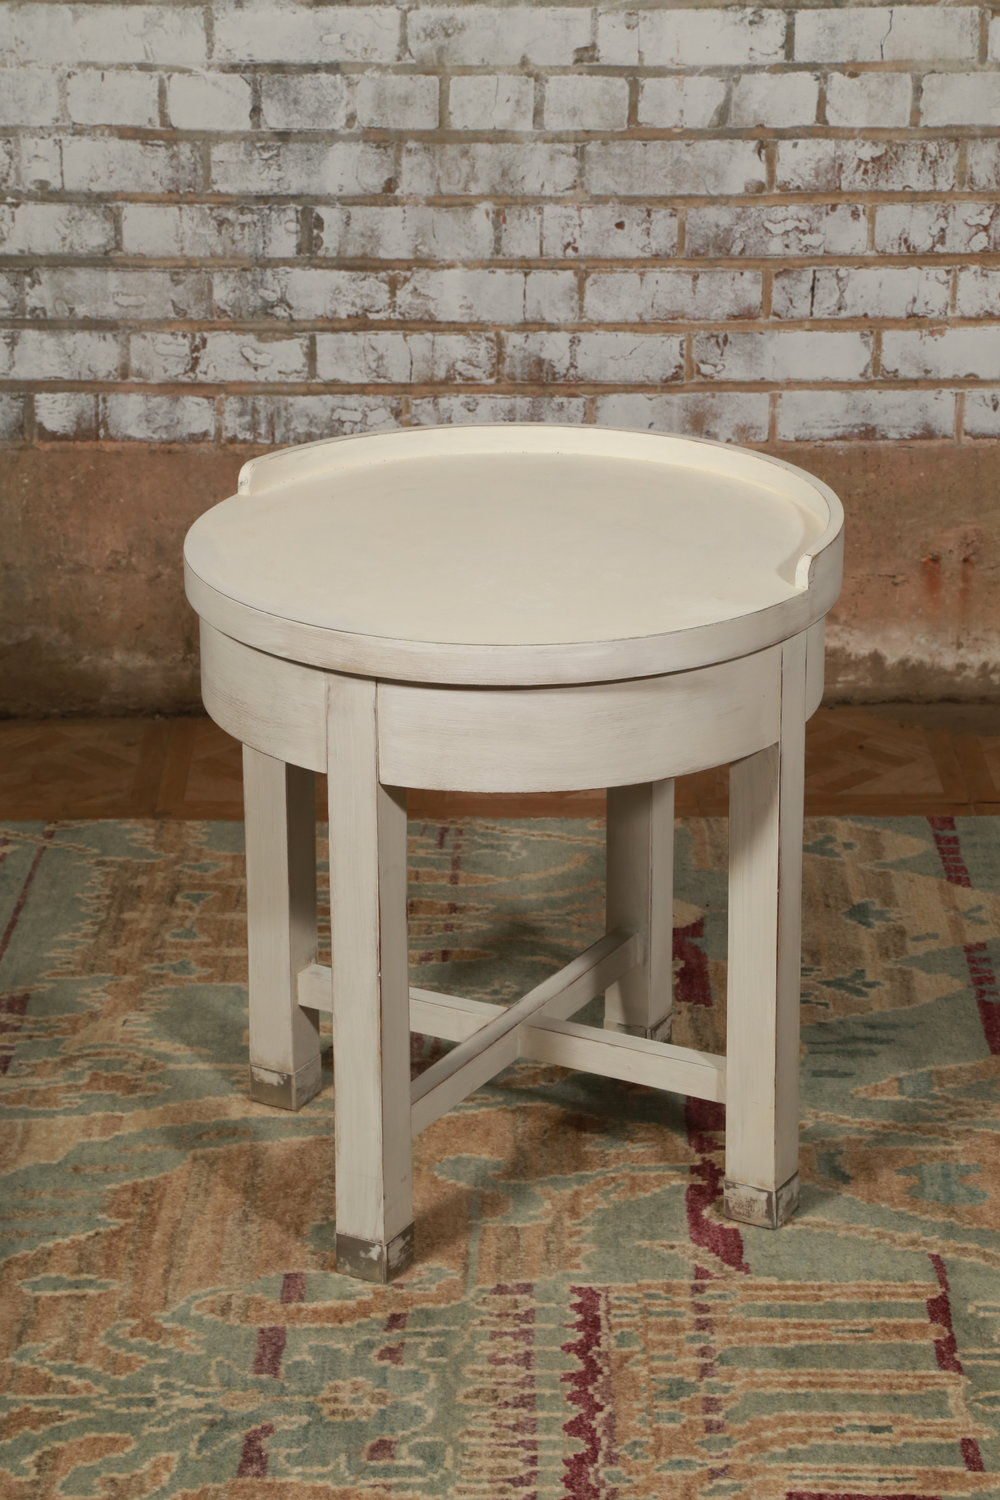 Round Side Table - White - $89